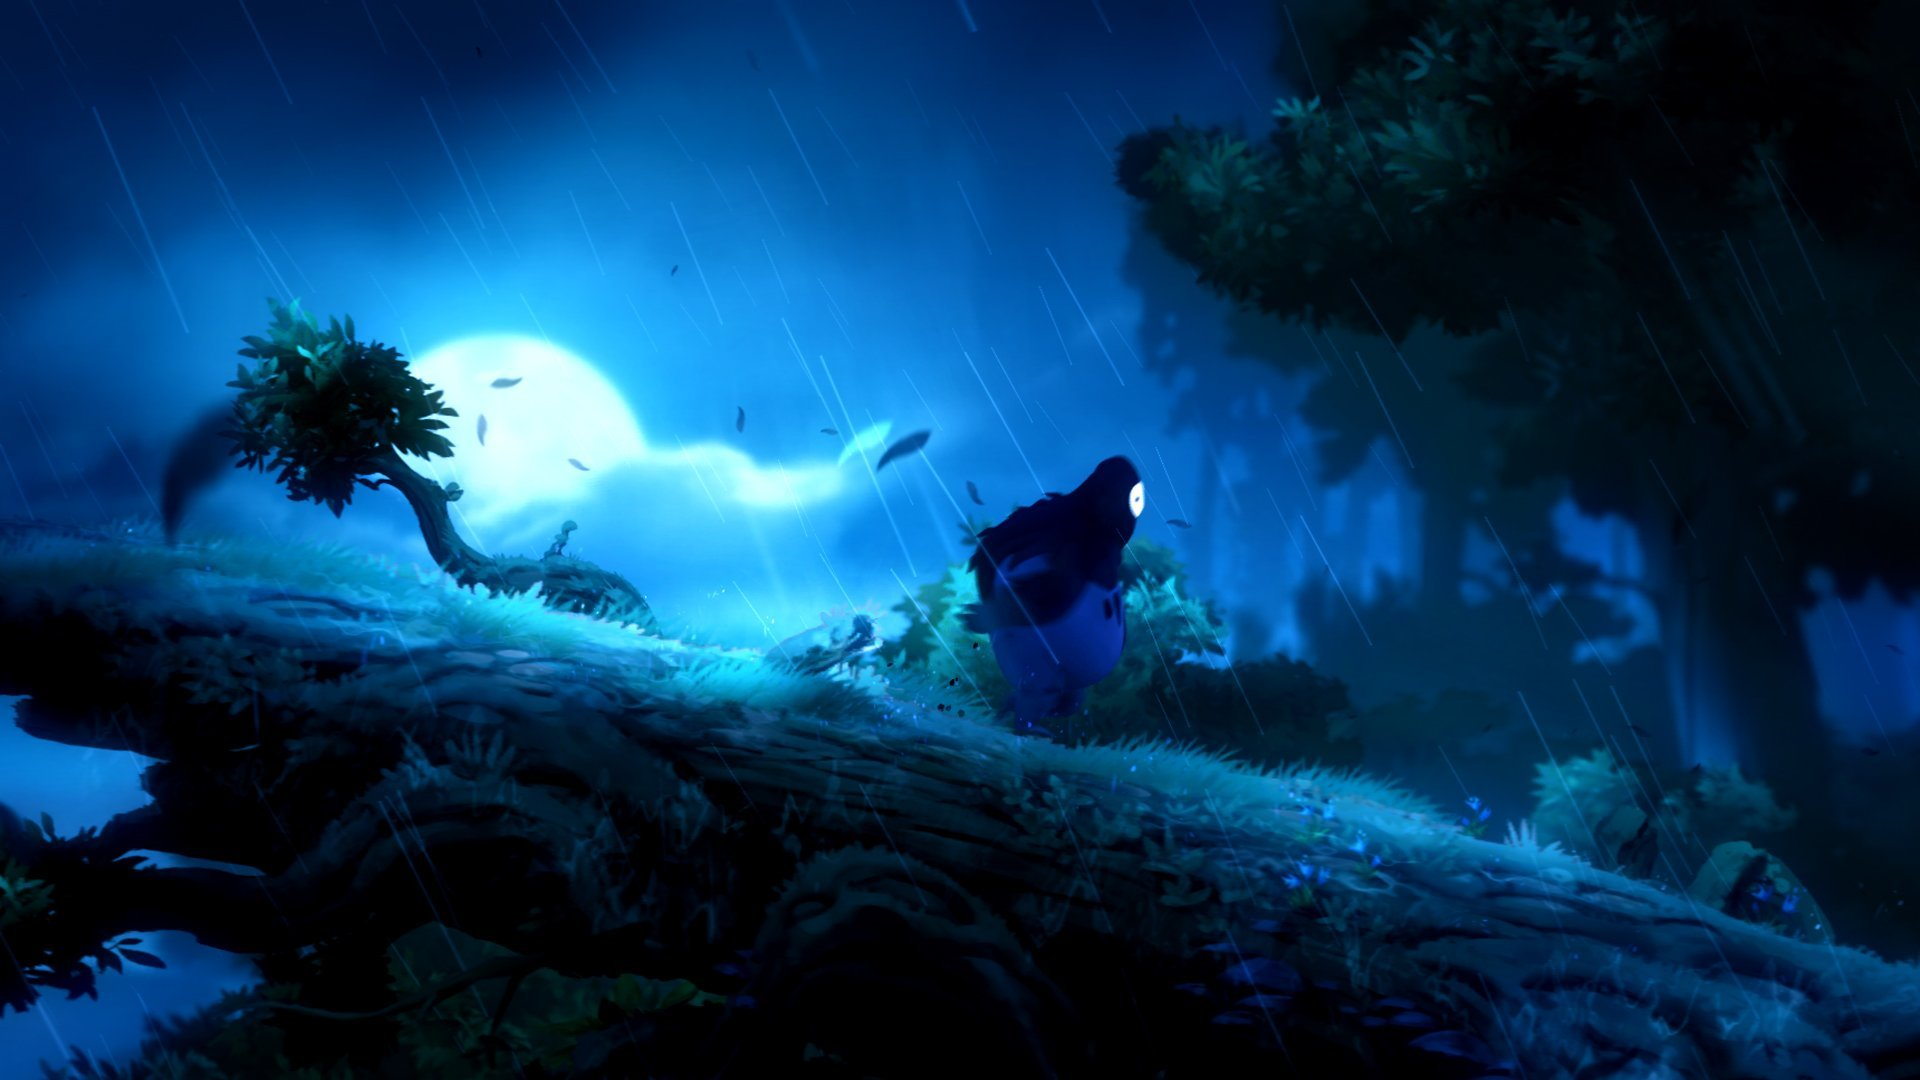 Free Download Ori And The Blind Forest Wallpapers Hintergrnde